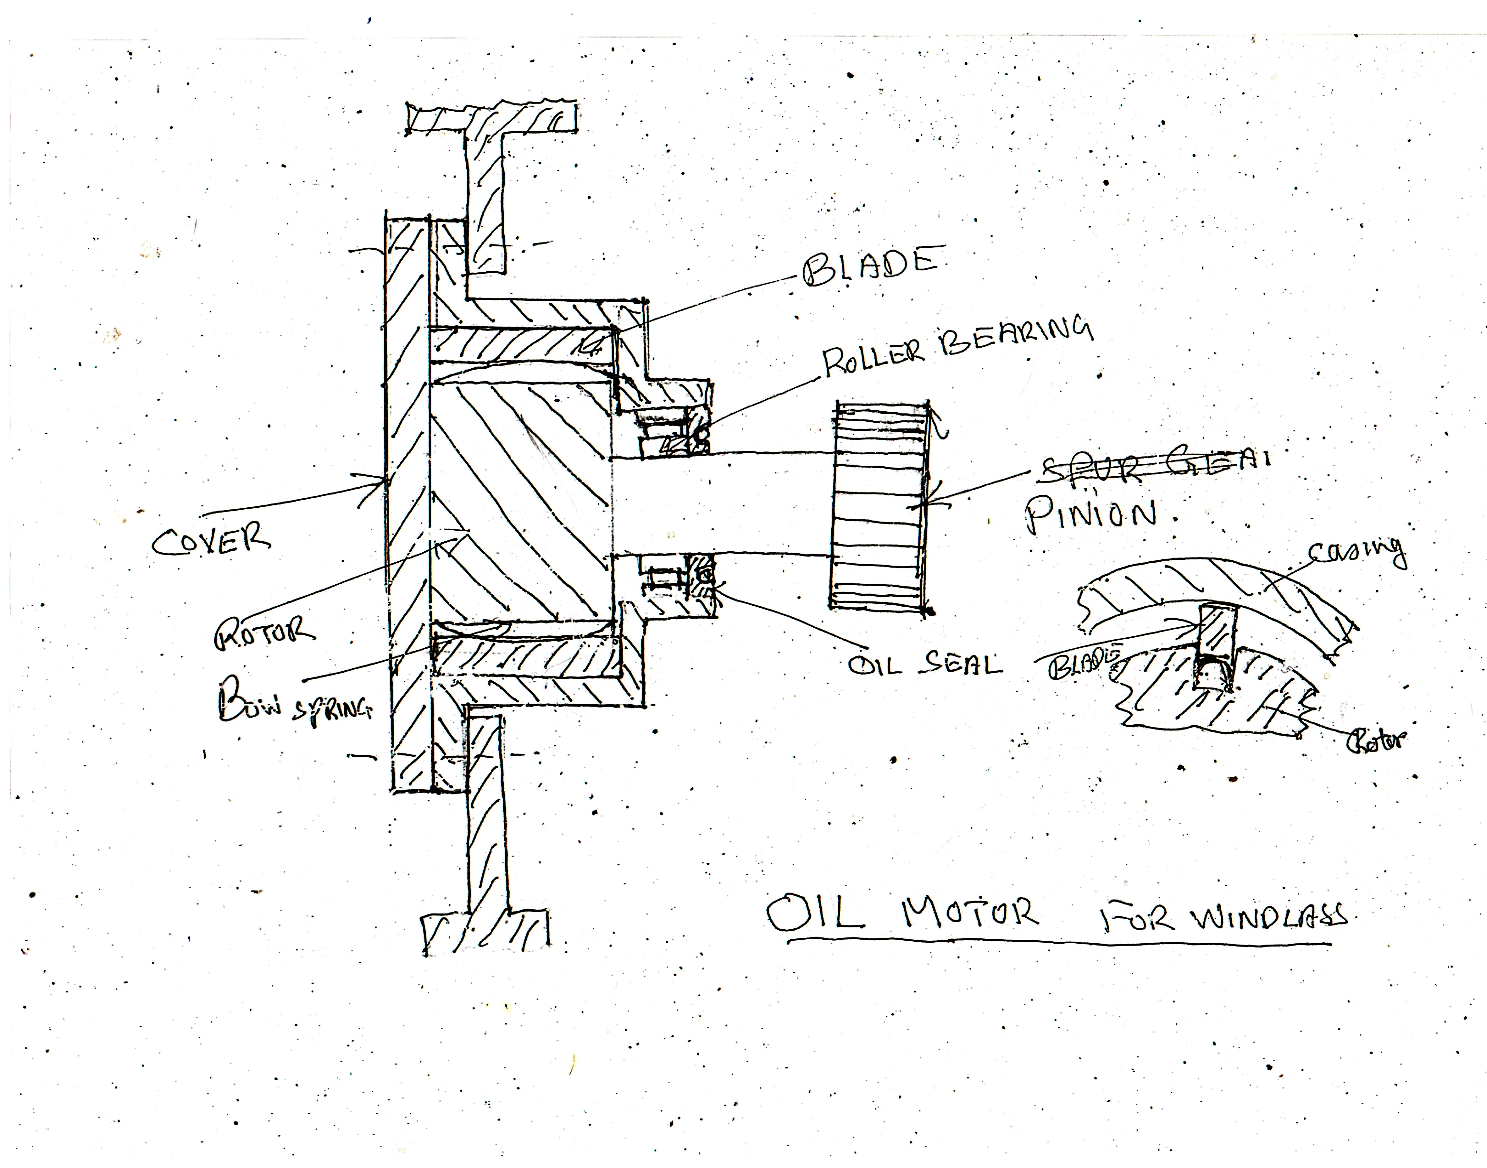 Ship Anchor Windlass And Types Of With Power System Winch Motor Wiring Diagram For Generator The Oil Seal Roller Bearing Also Renewed If They Are Worn Out Sketch Detail Vane Assembly Is Shown Underfig 13b